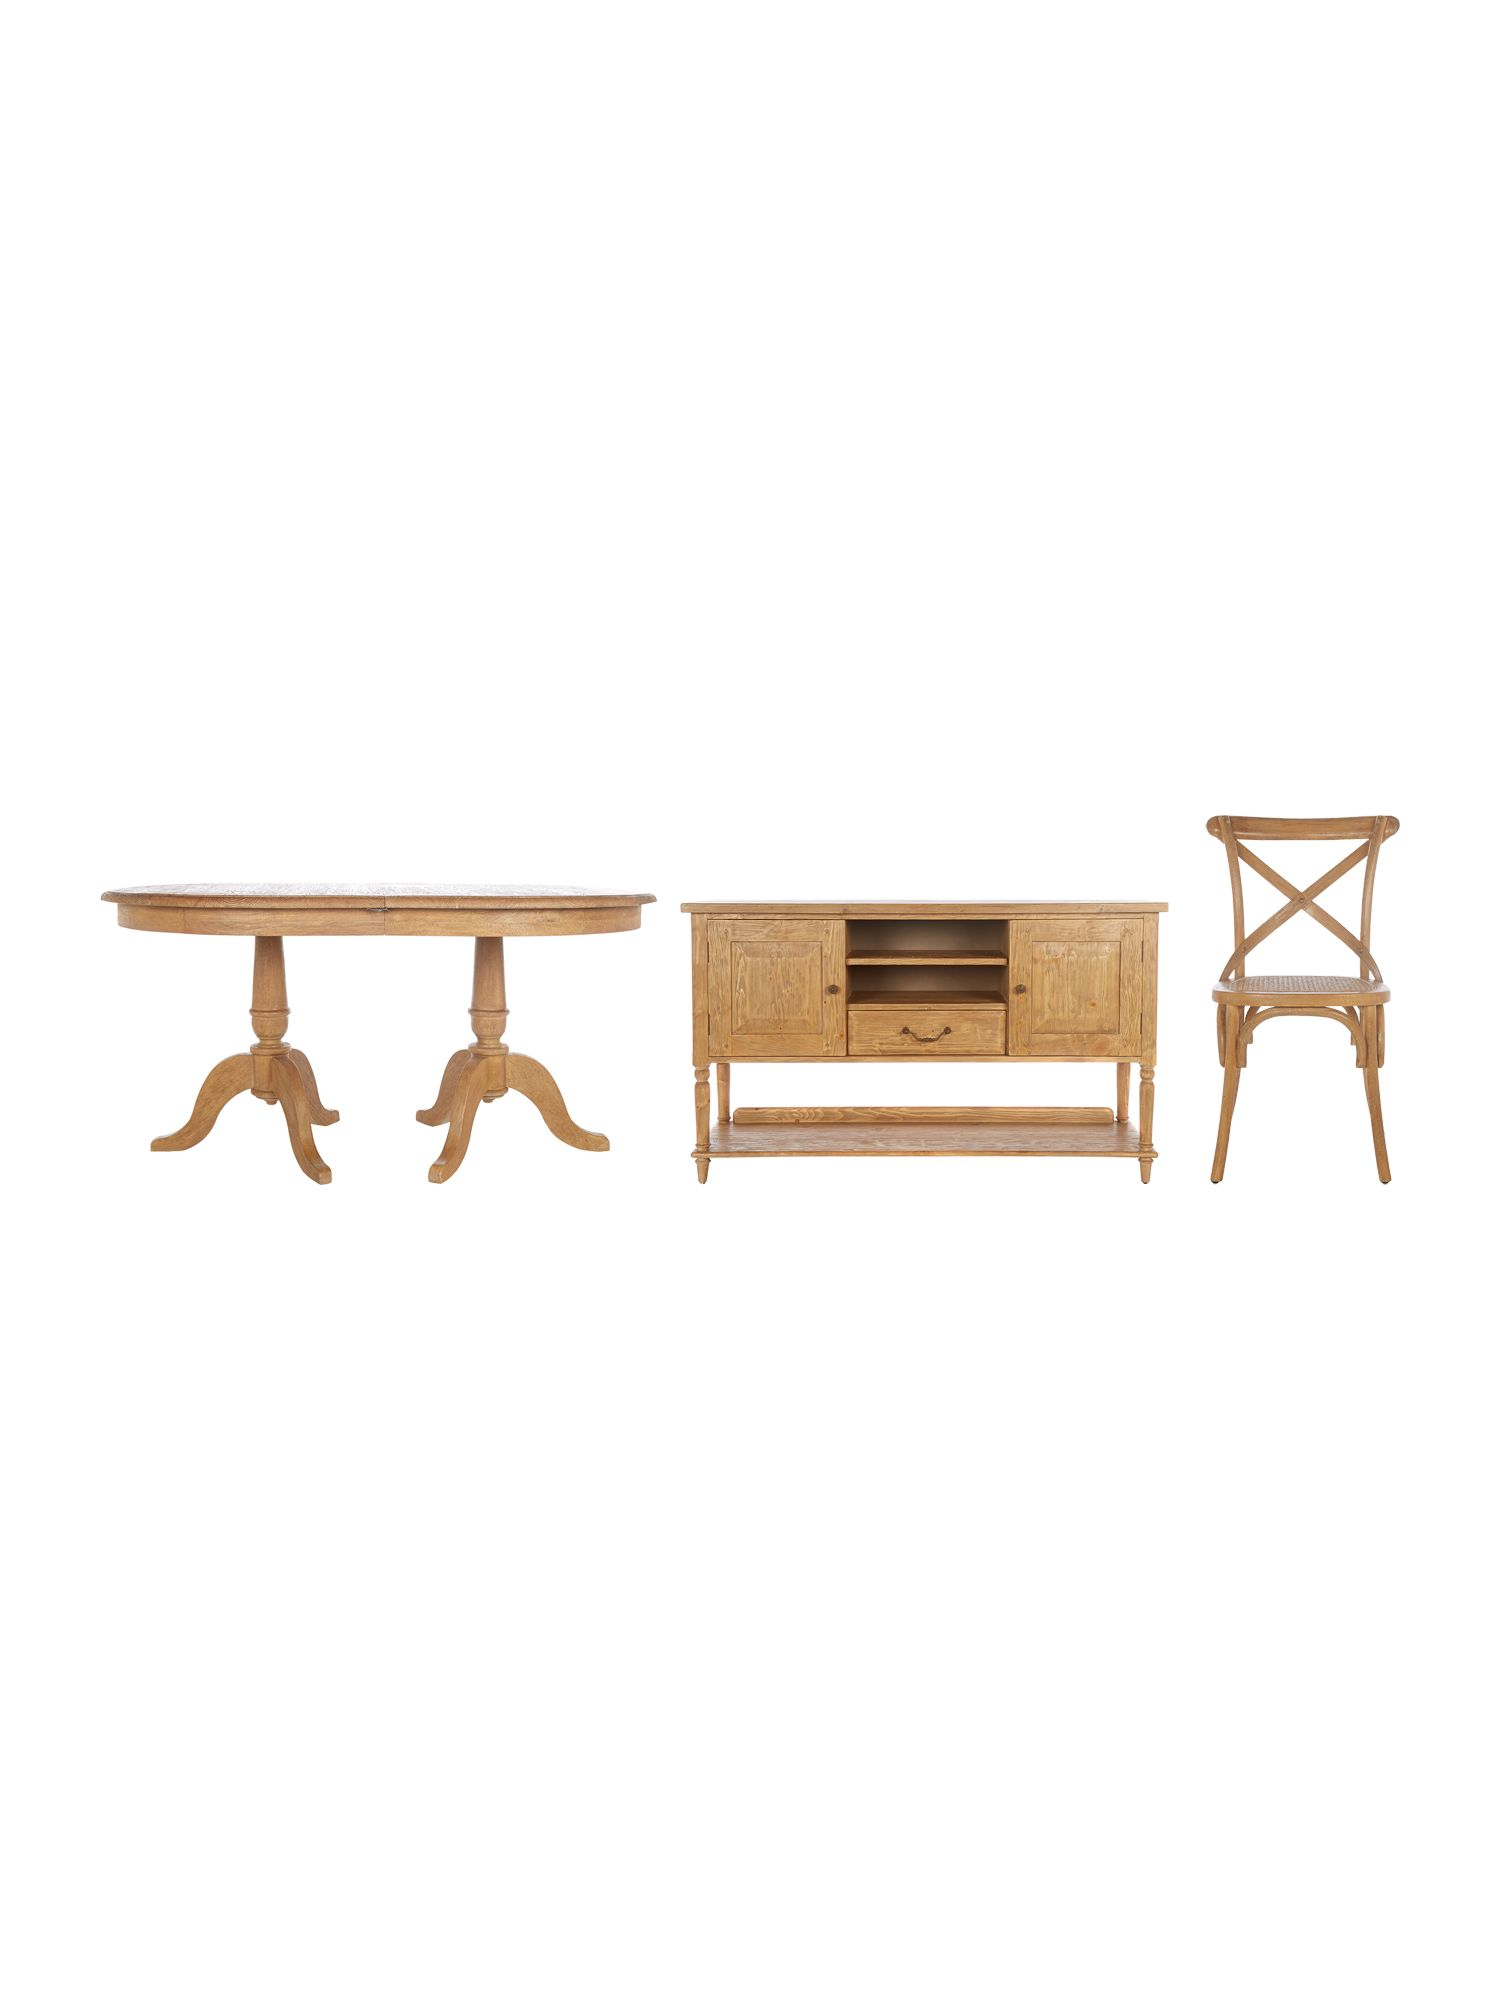 Cambridge dining furniture range